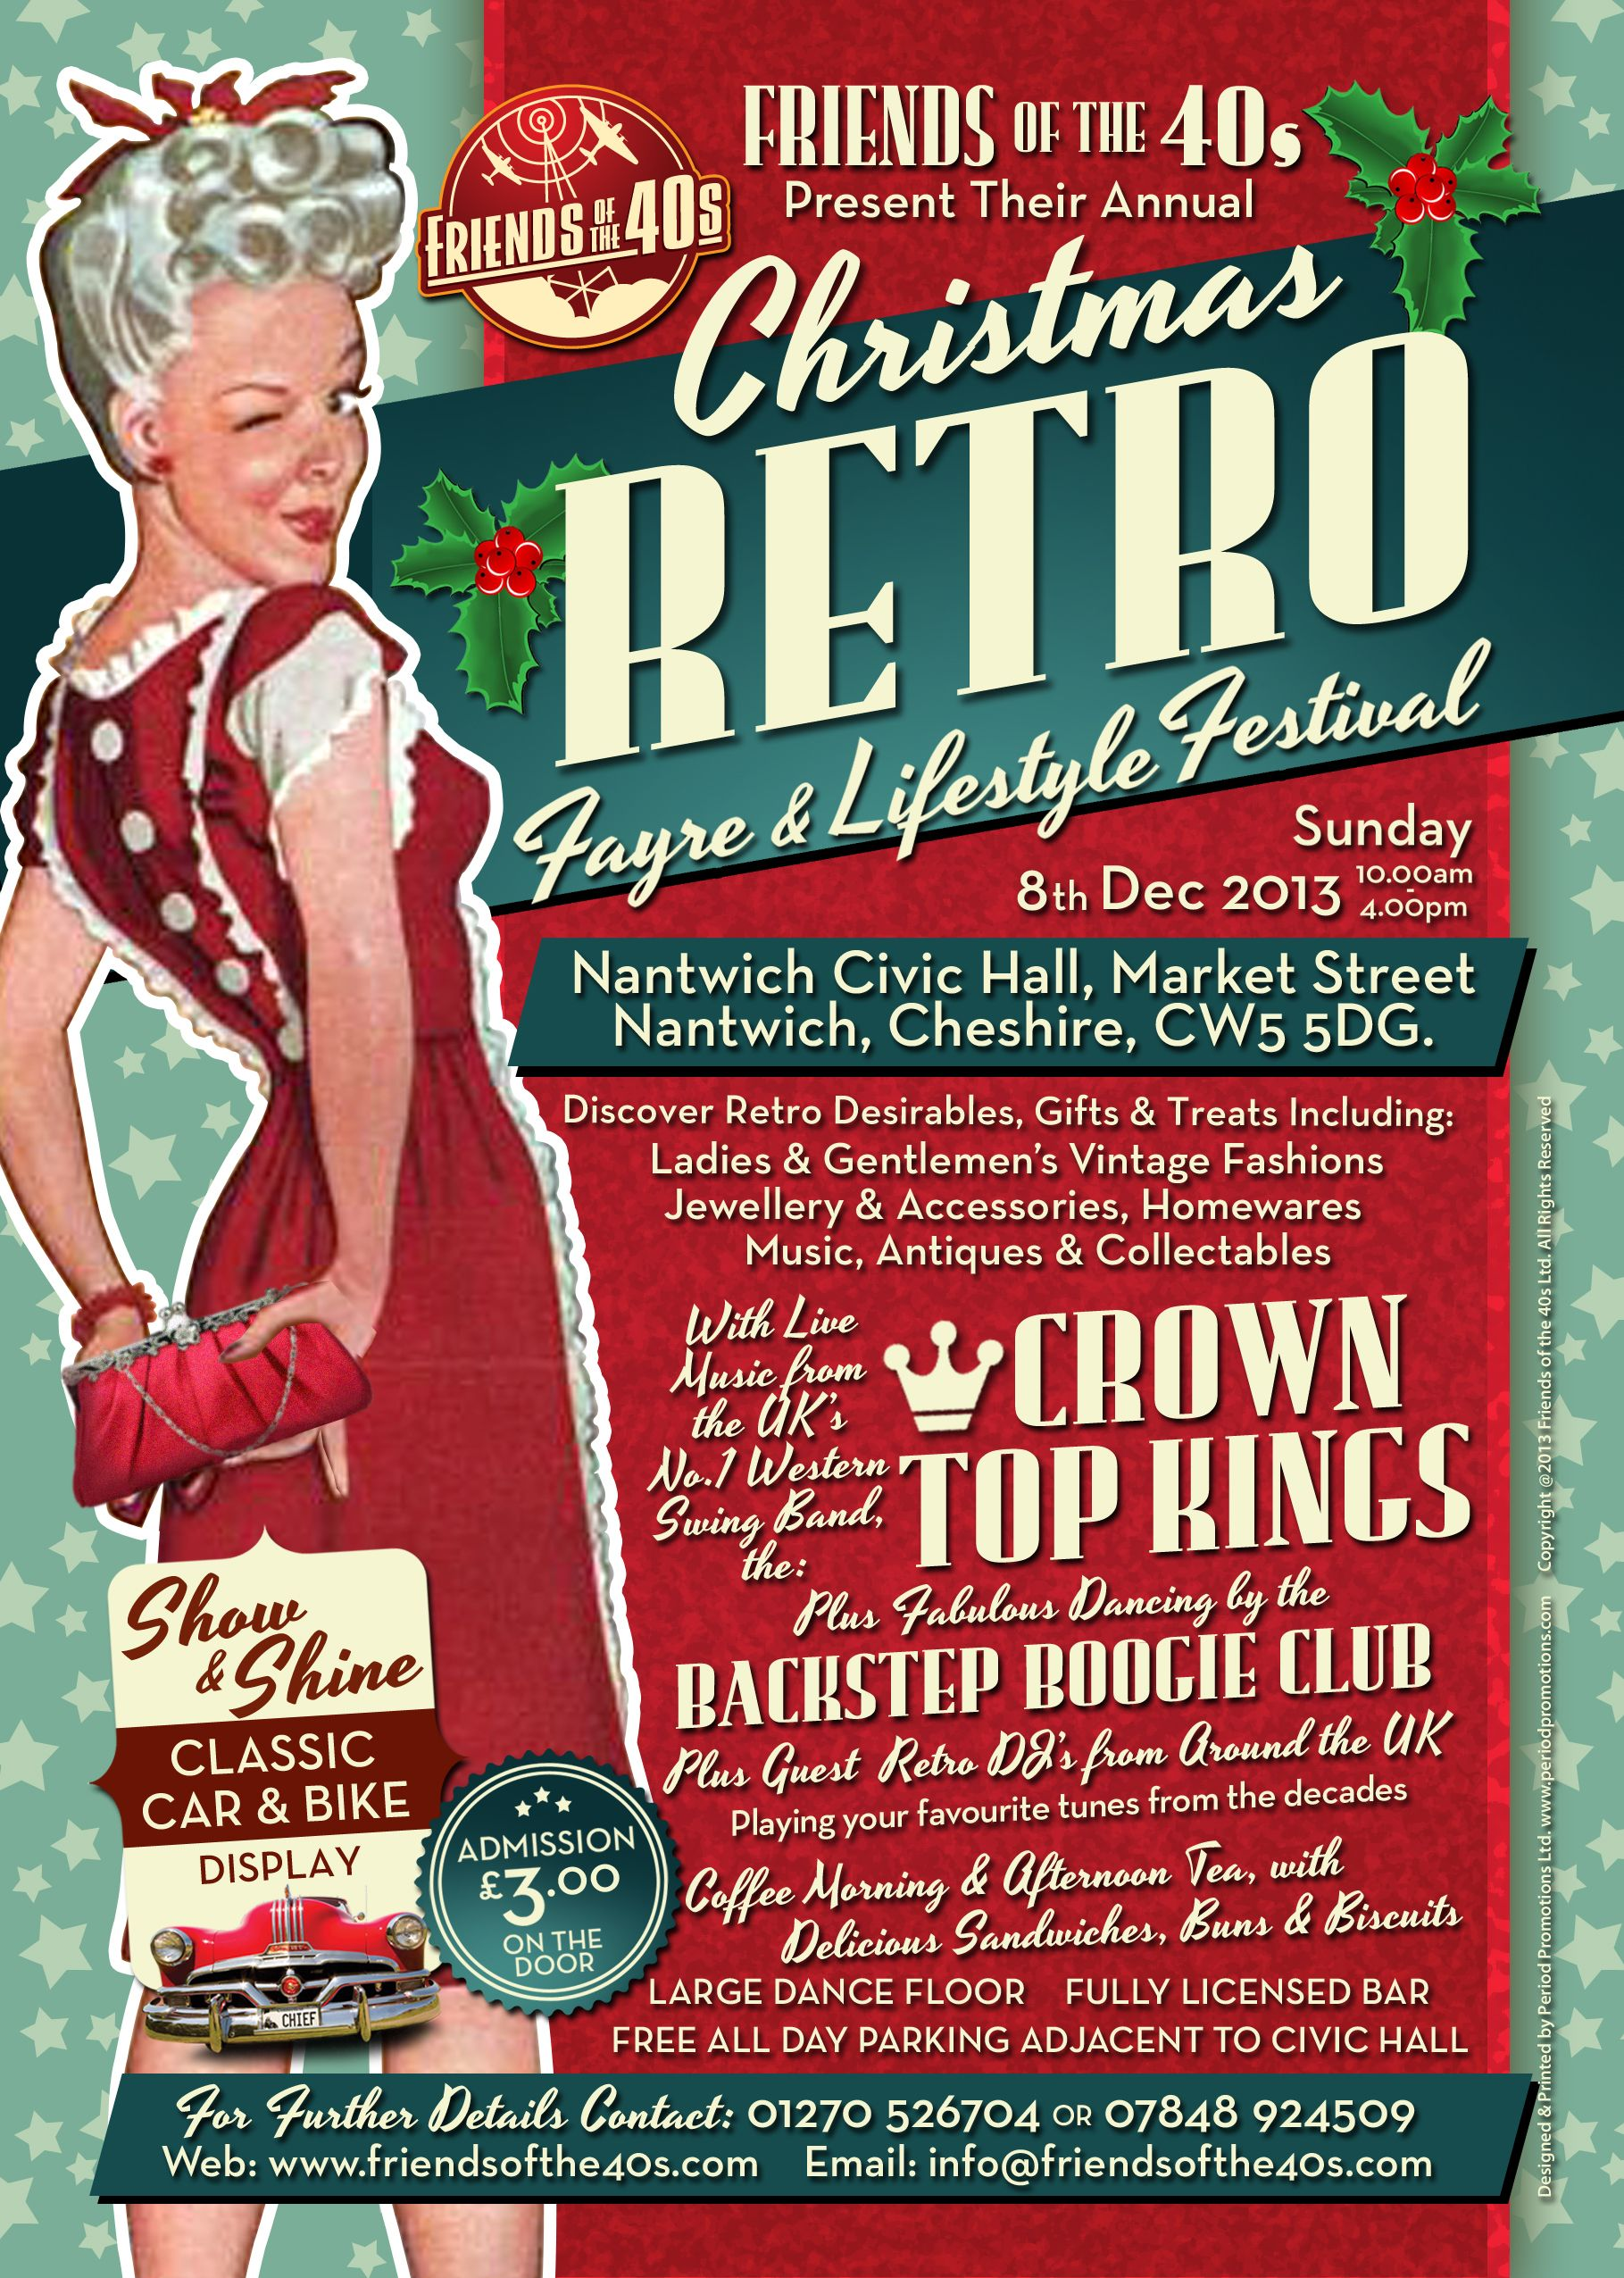 Promotional Poster For Fotf Annual Christmas Retro